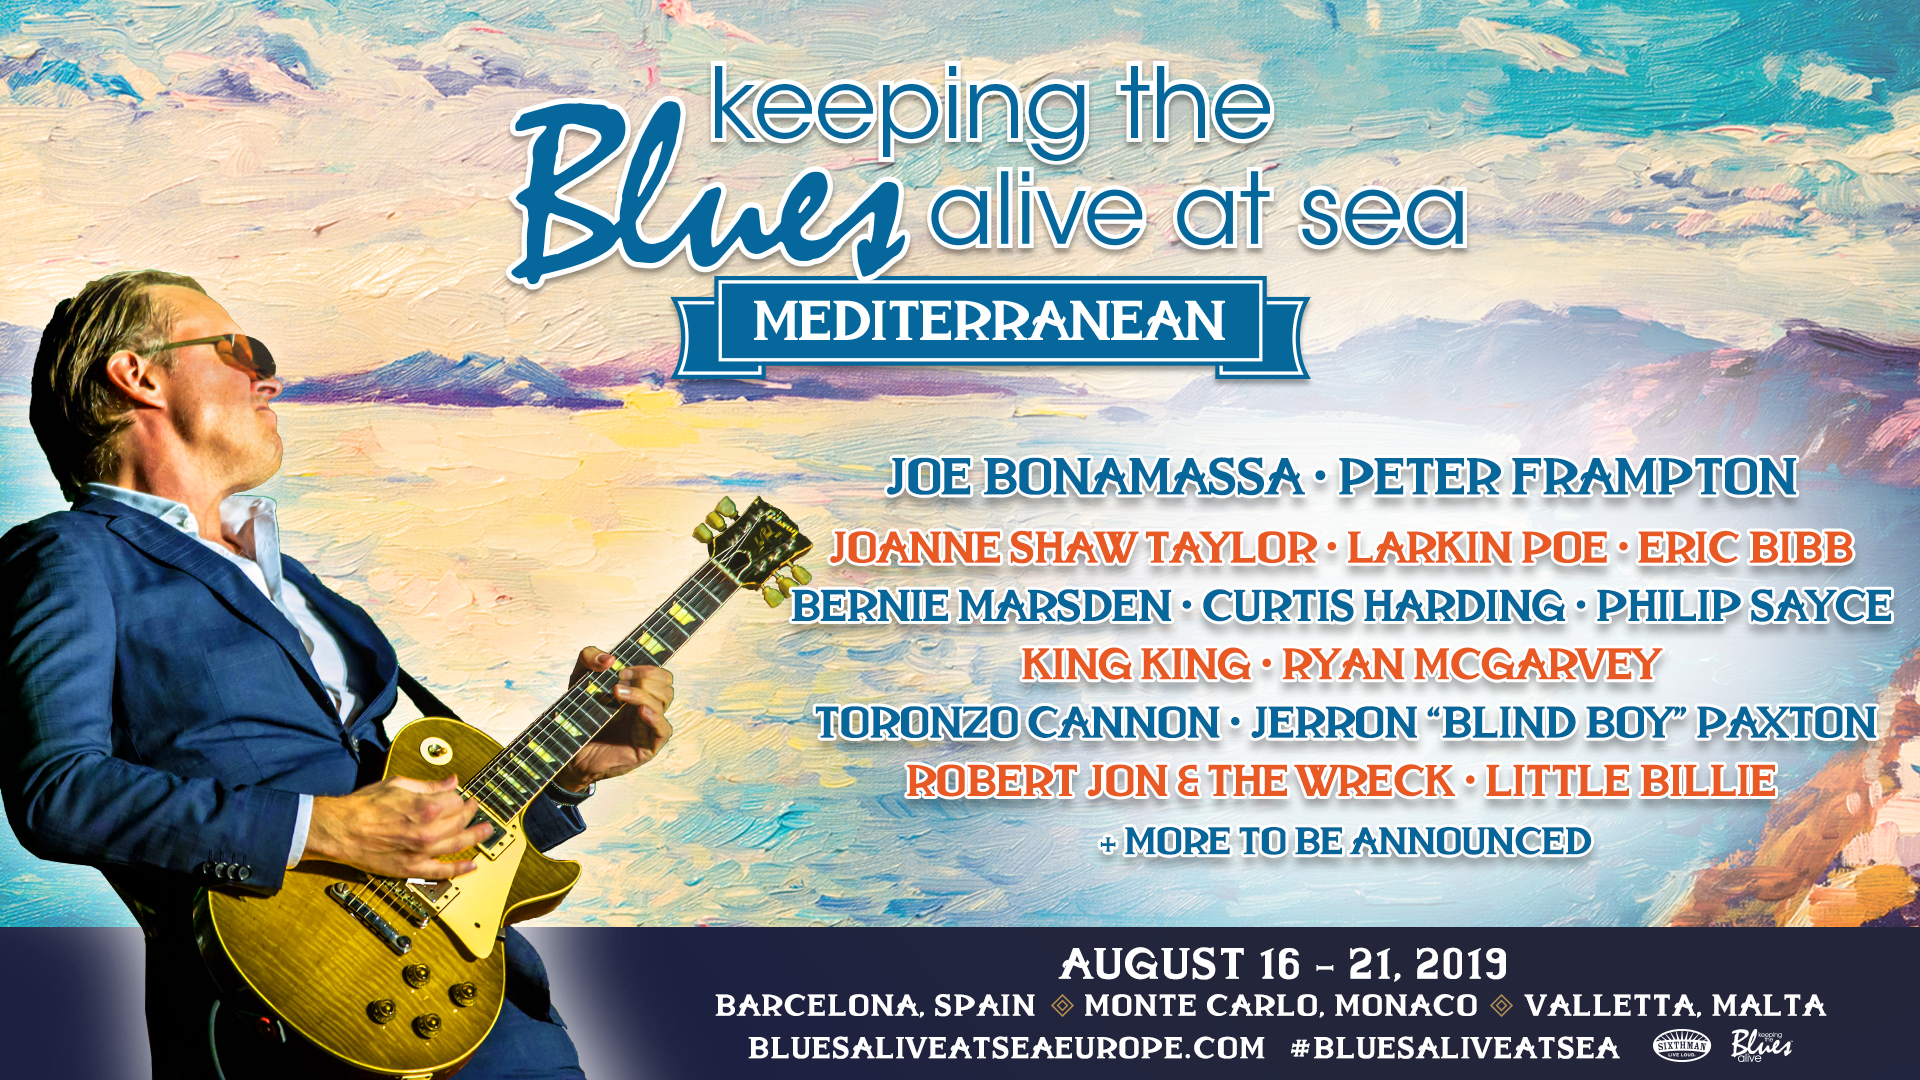 Keeping the Blues Alive Foundation on the Mediterranean